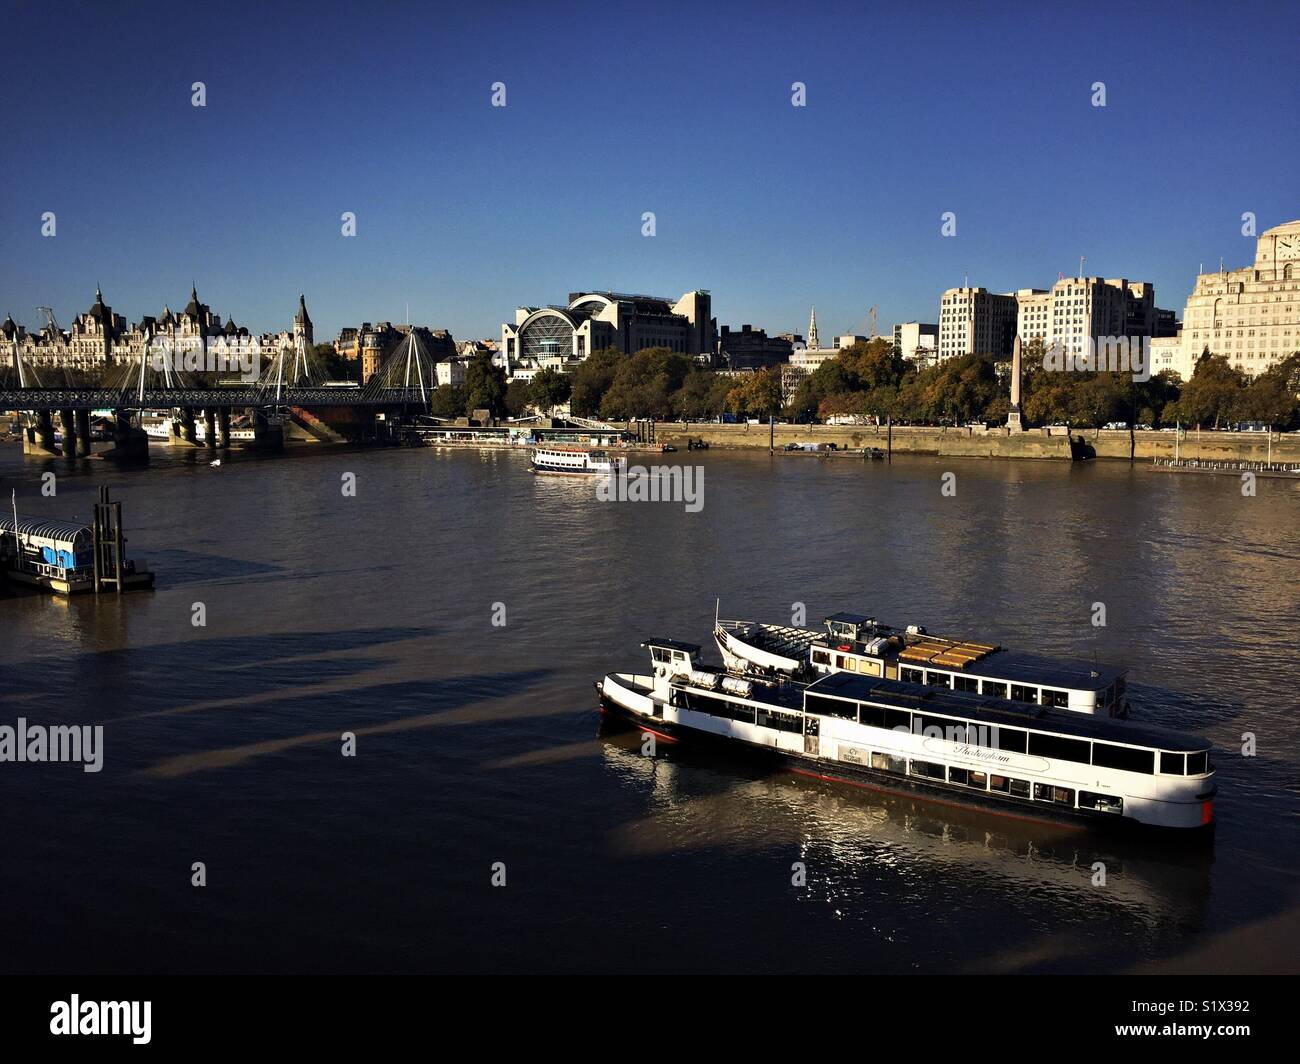 A pleasure boat sails down the river Thames in London Stock Photo